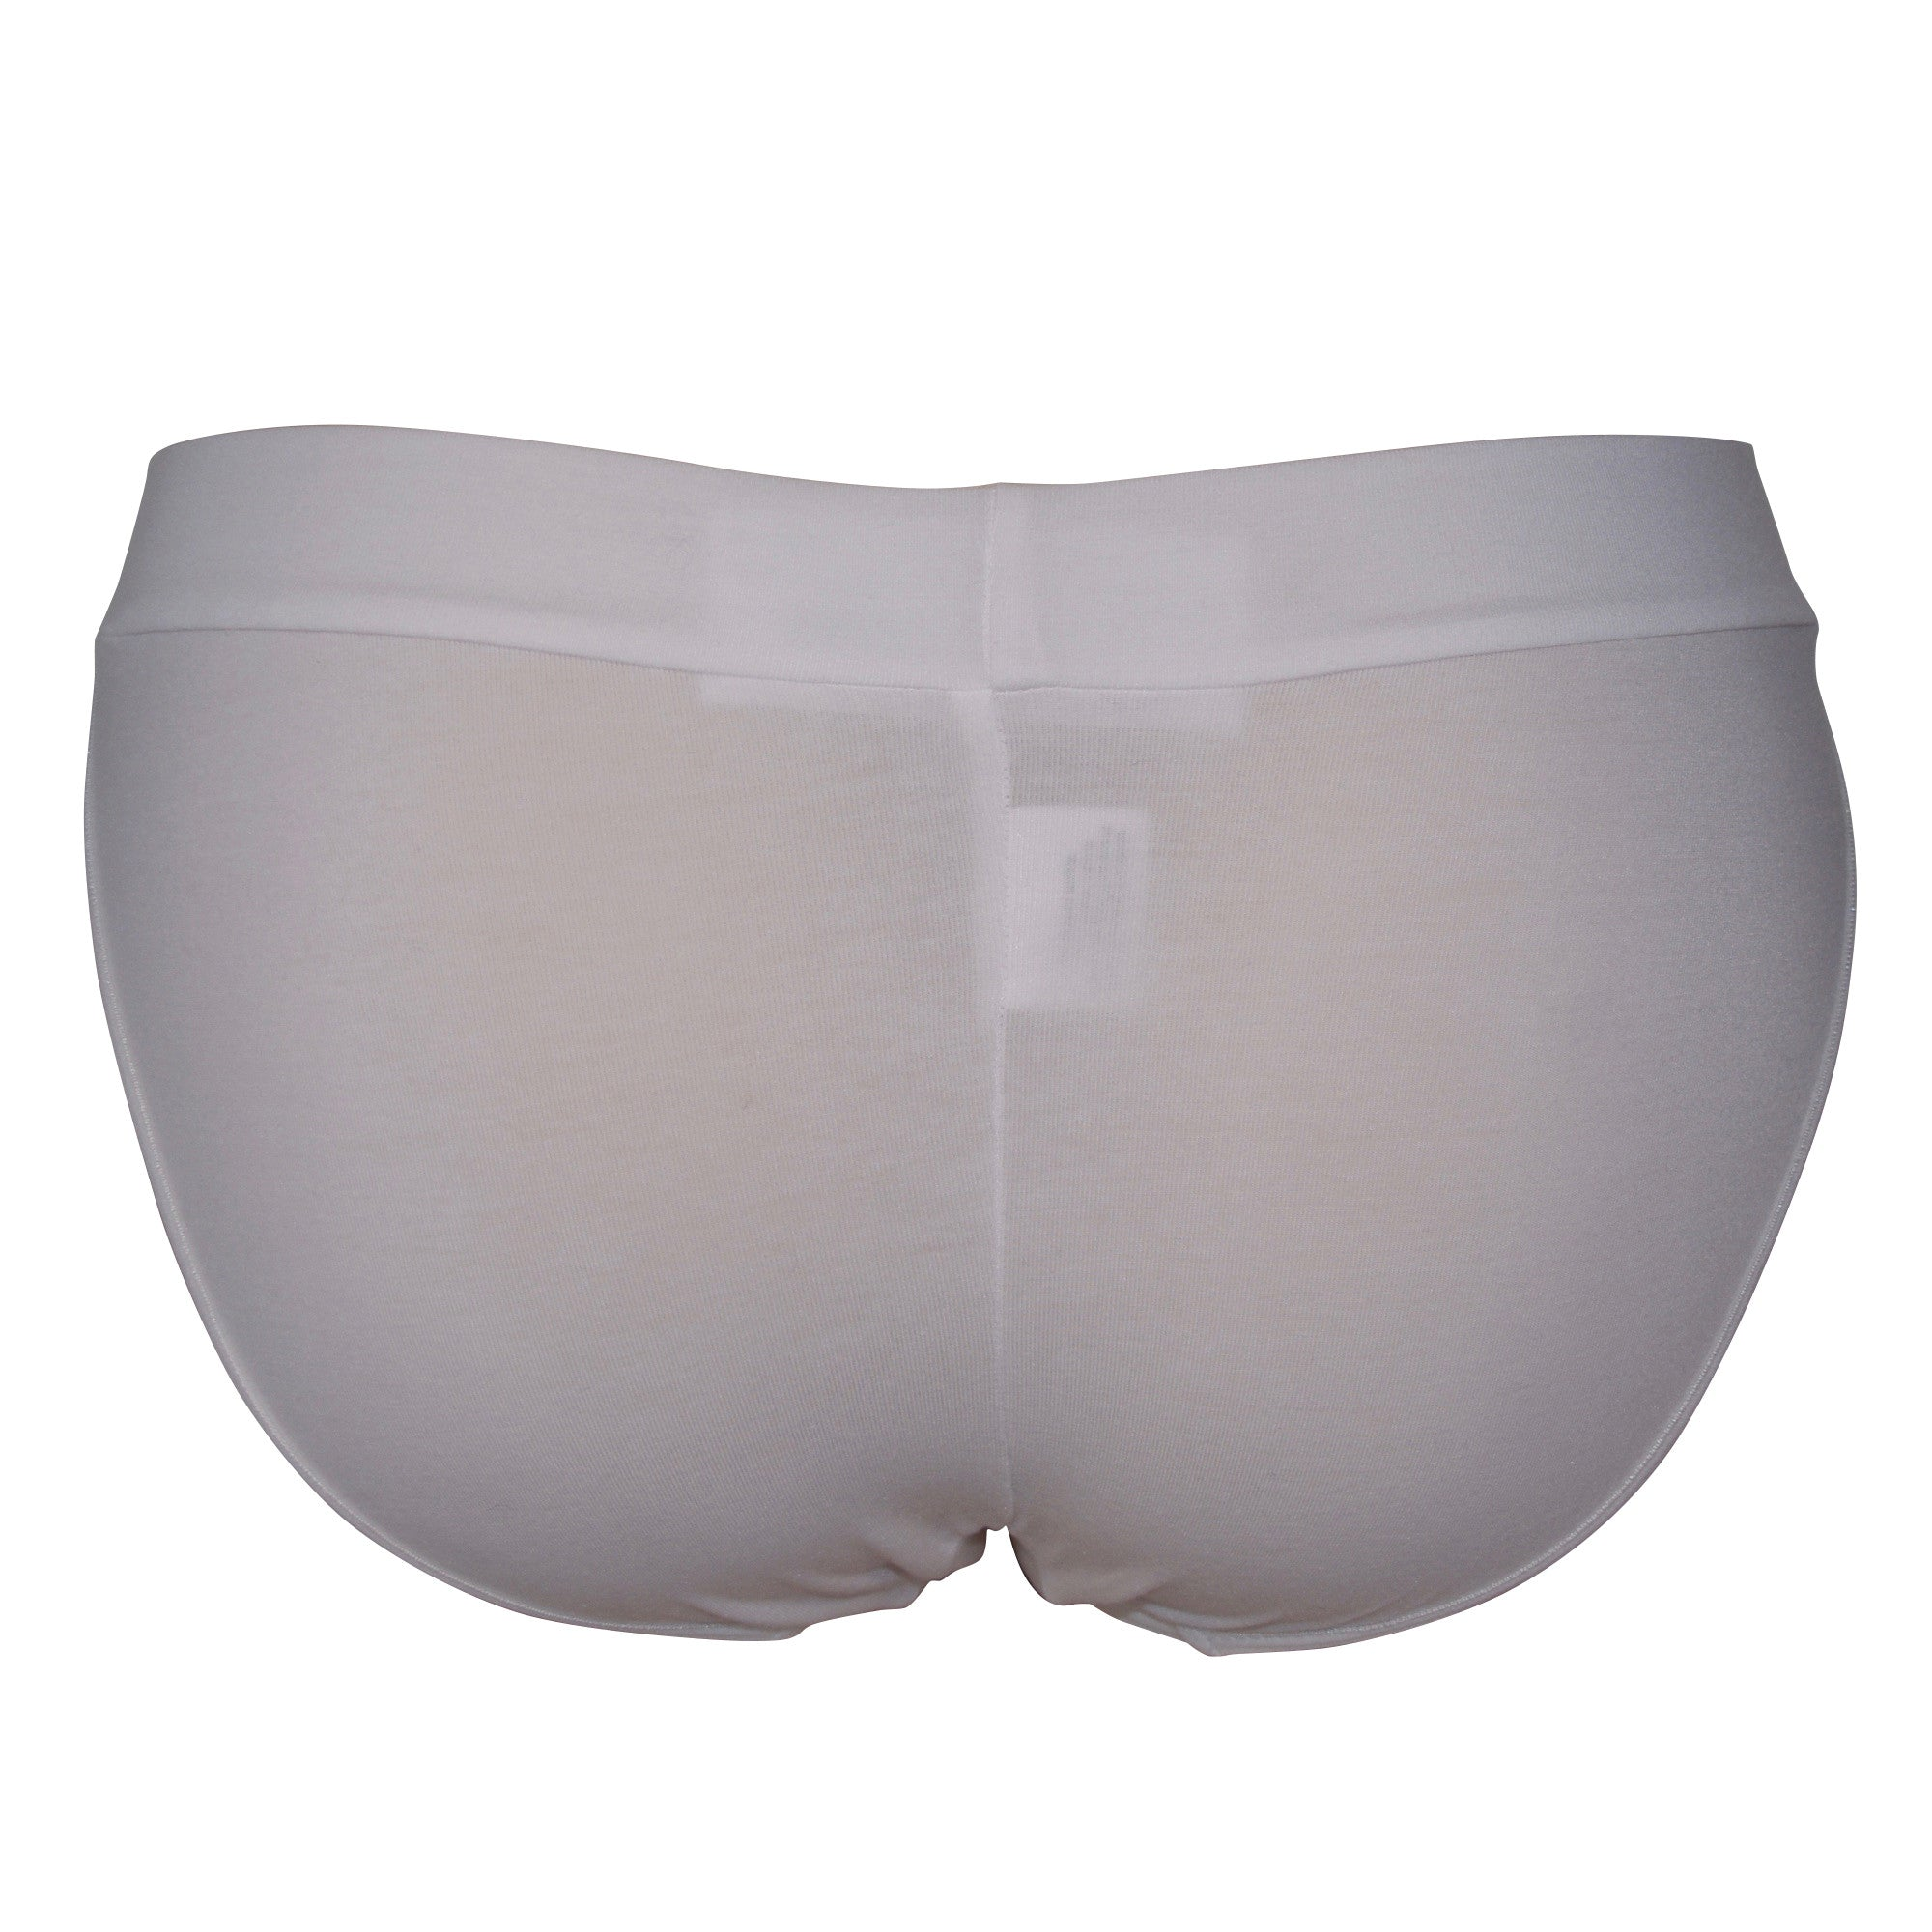 aab75a20e48e5 Products - Bodywise Underwear